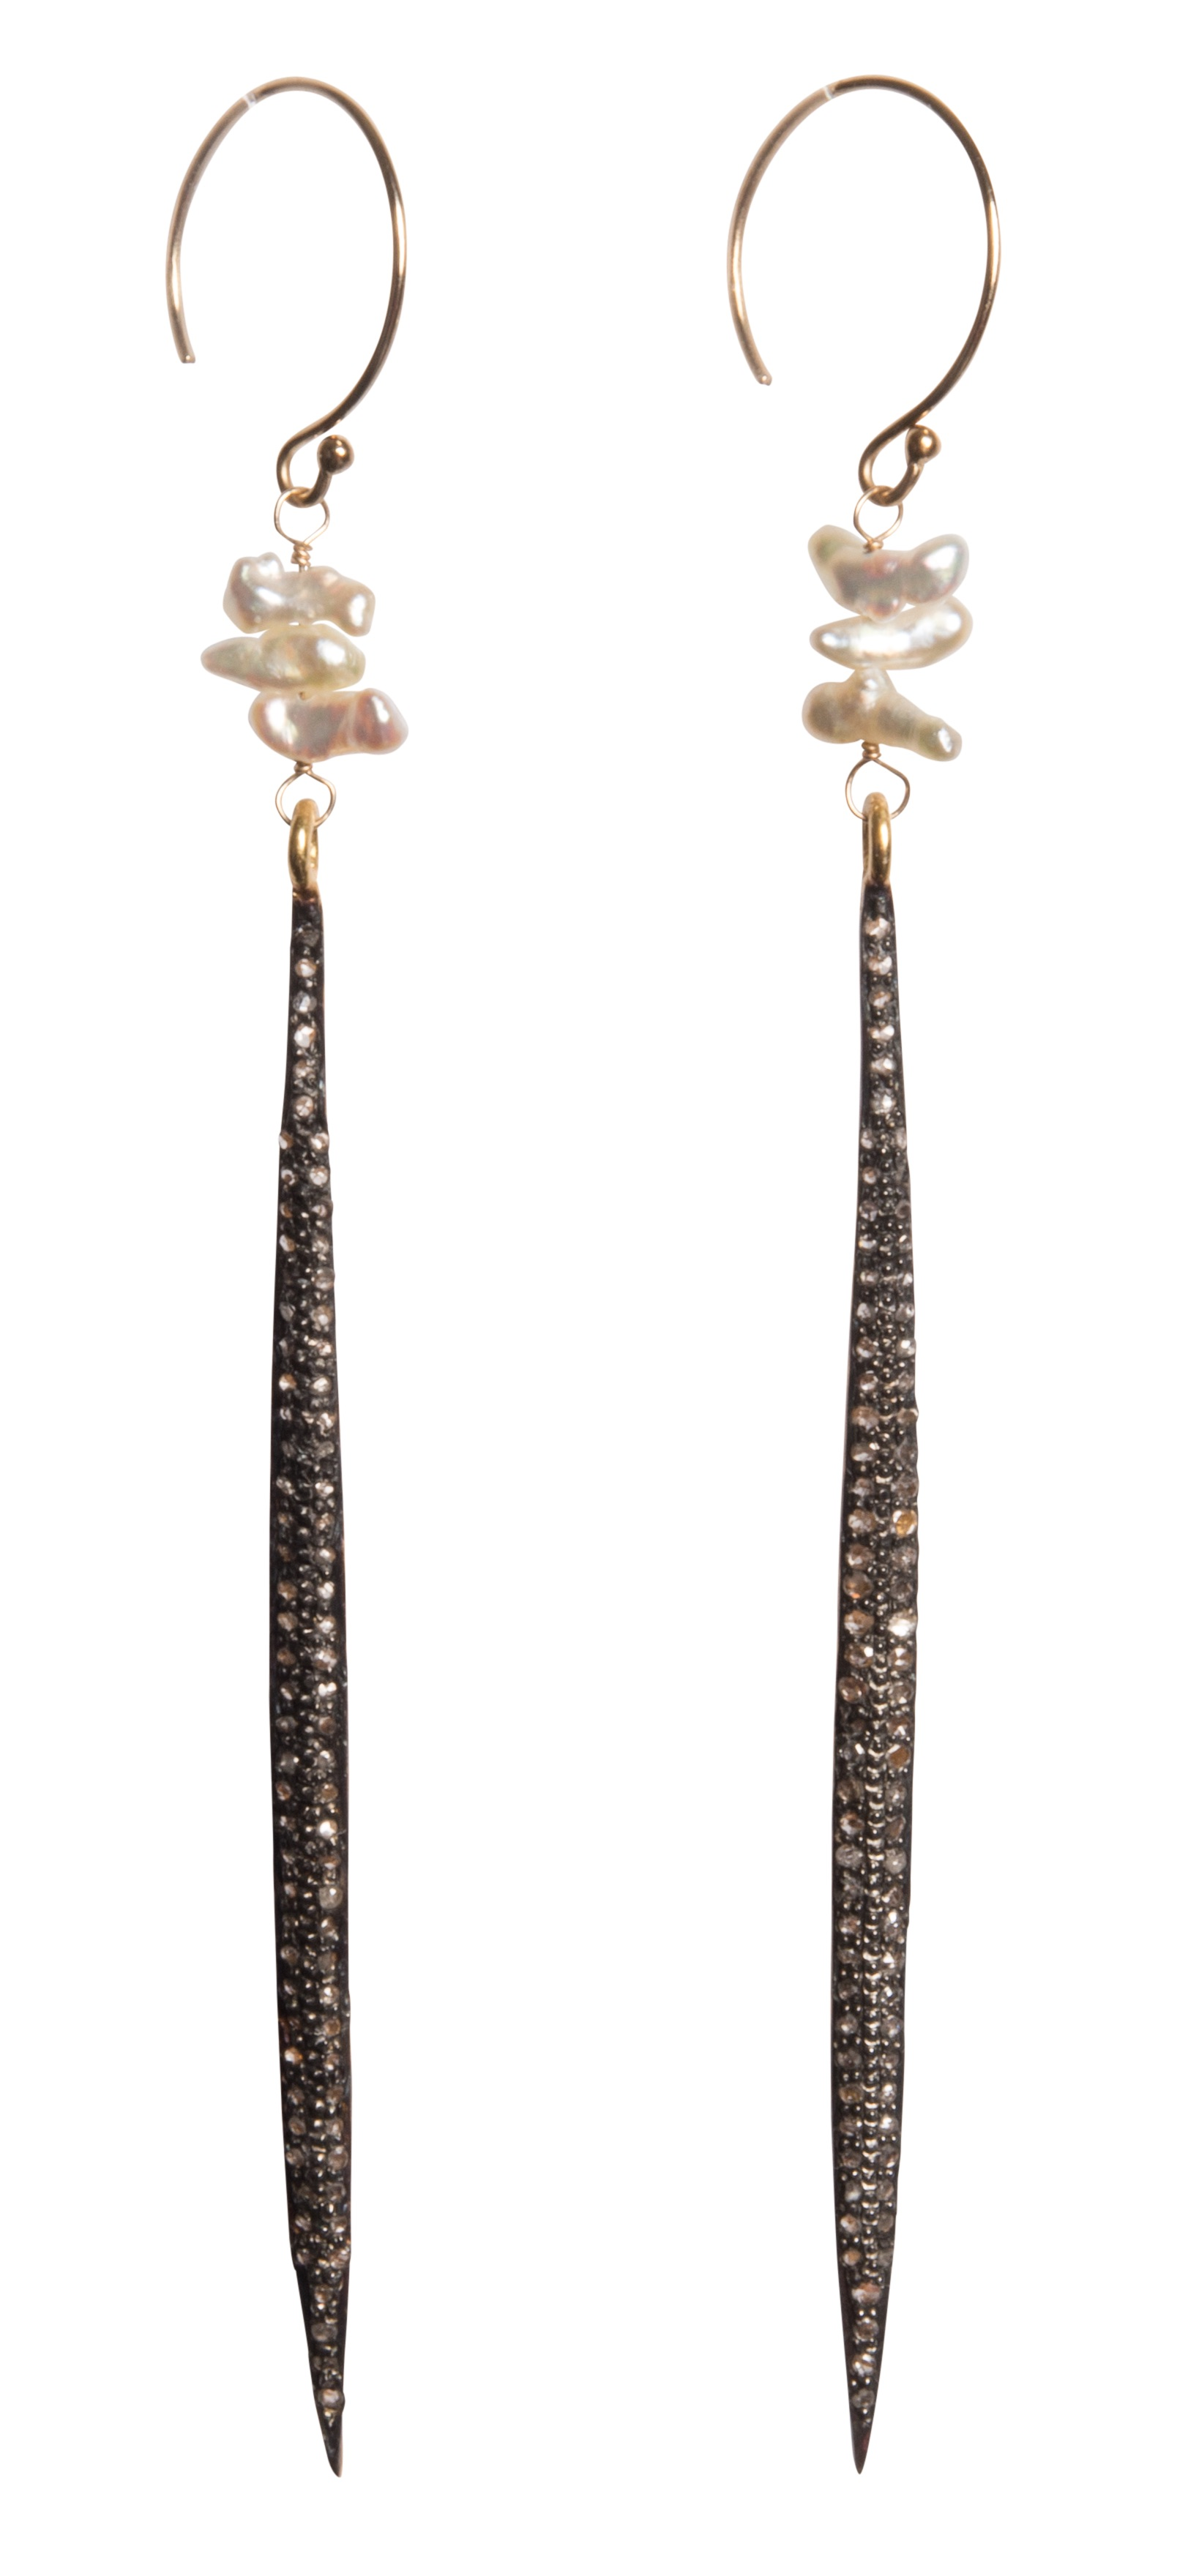 Tracy Arrington champagne diamond and pearl earrings | JCK On Your Market